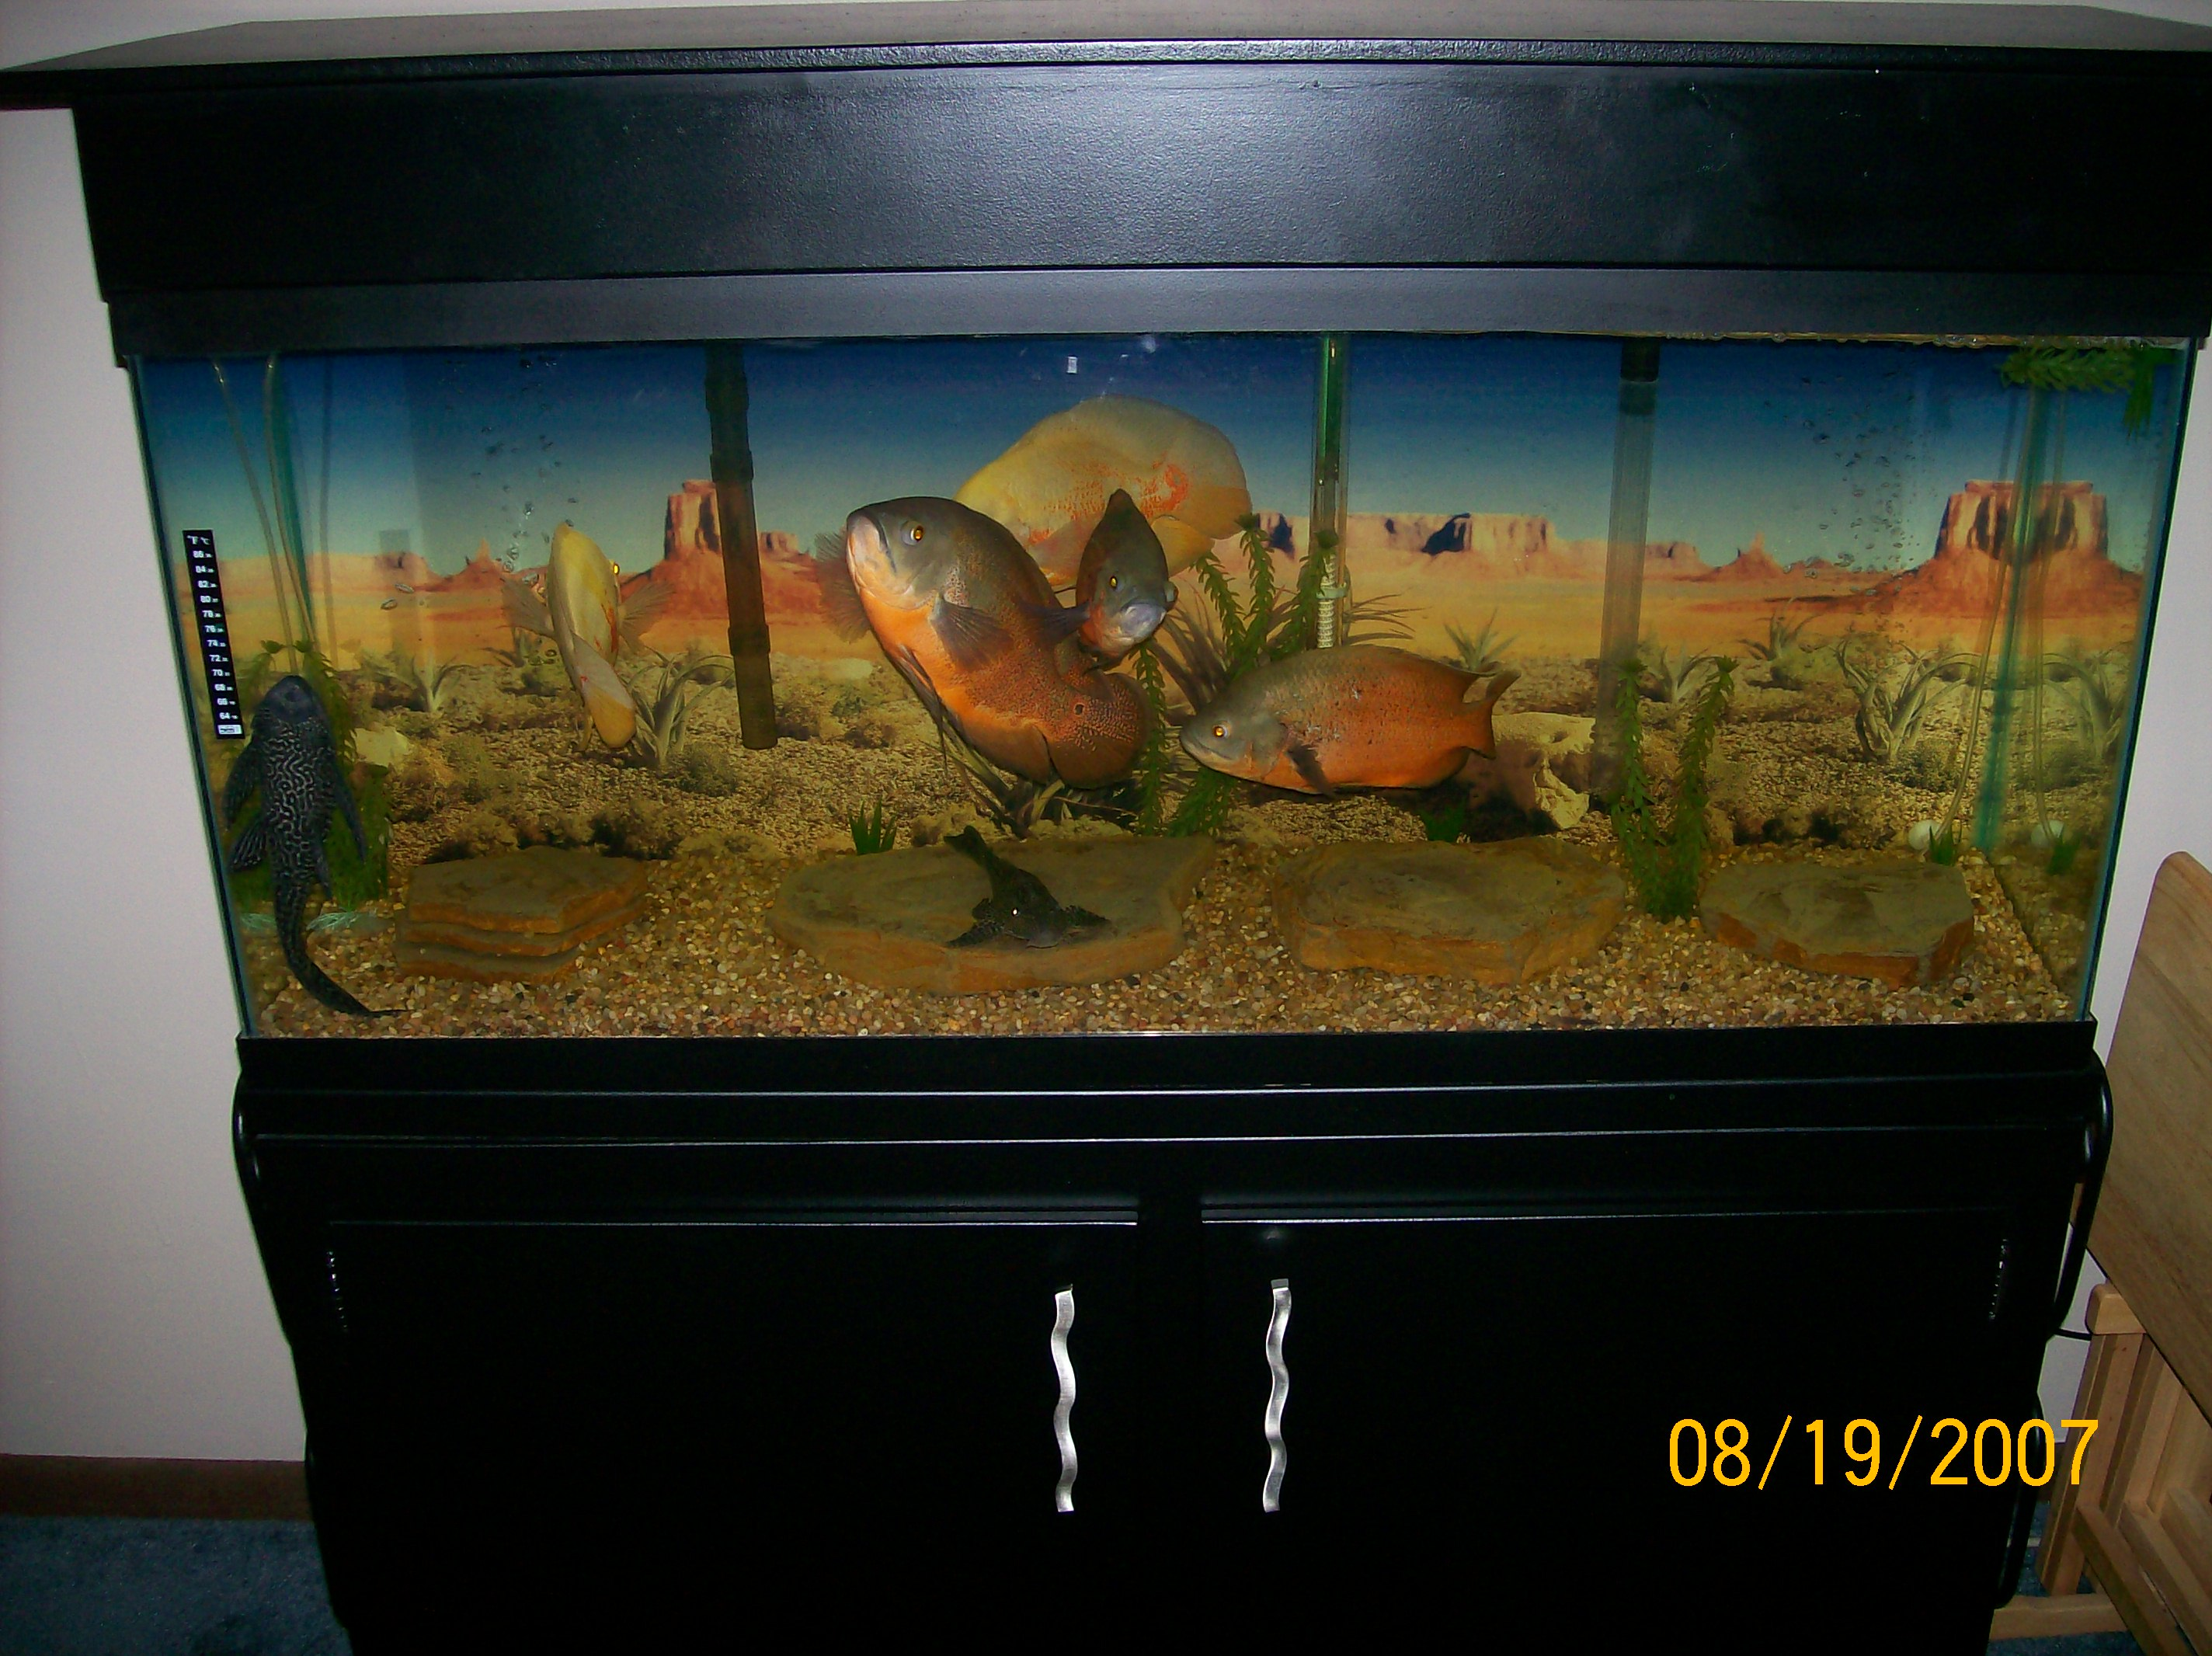 Turtle Tank For Sale Cheap Glass Turtle Terrarium 24x18x14 Monstermarketplace likewise Howtocleanafishtank also Maintenance Free Fish Tank 3d Screensaver Windows 7 as well  together with Toilet Aquarium. on oscar fish tank cleaning